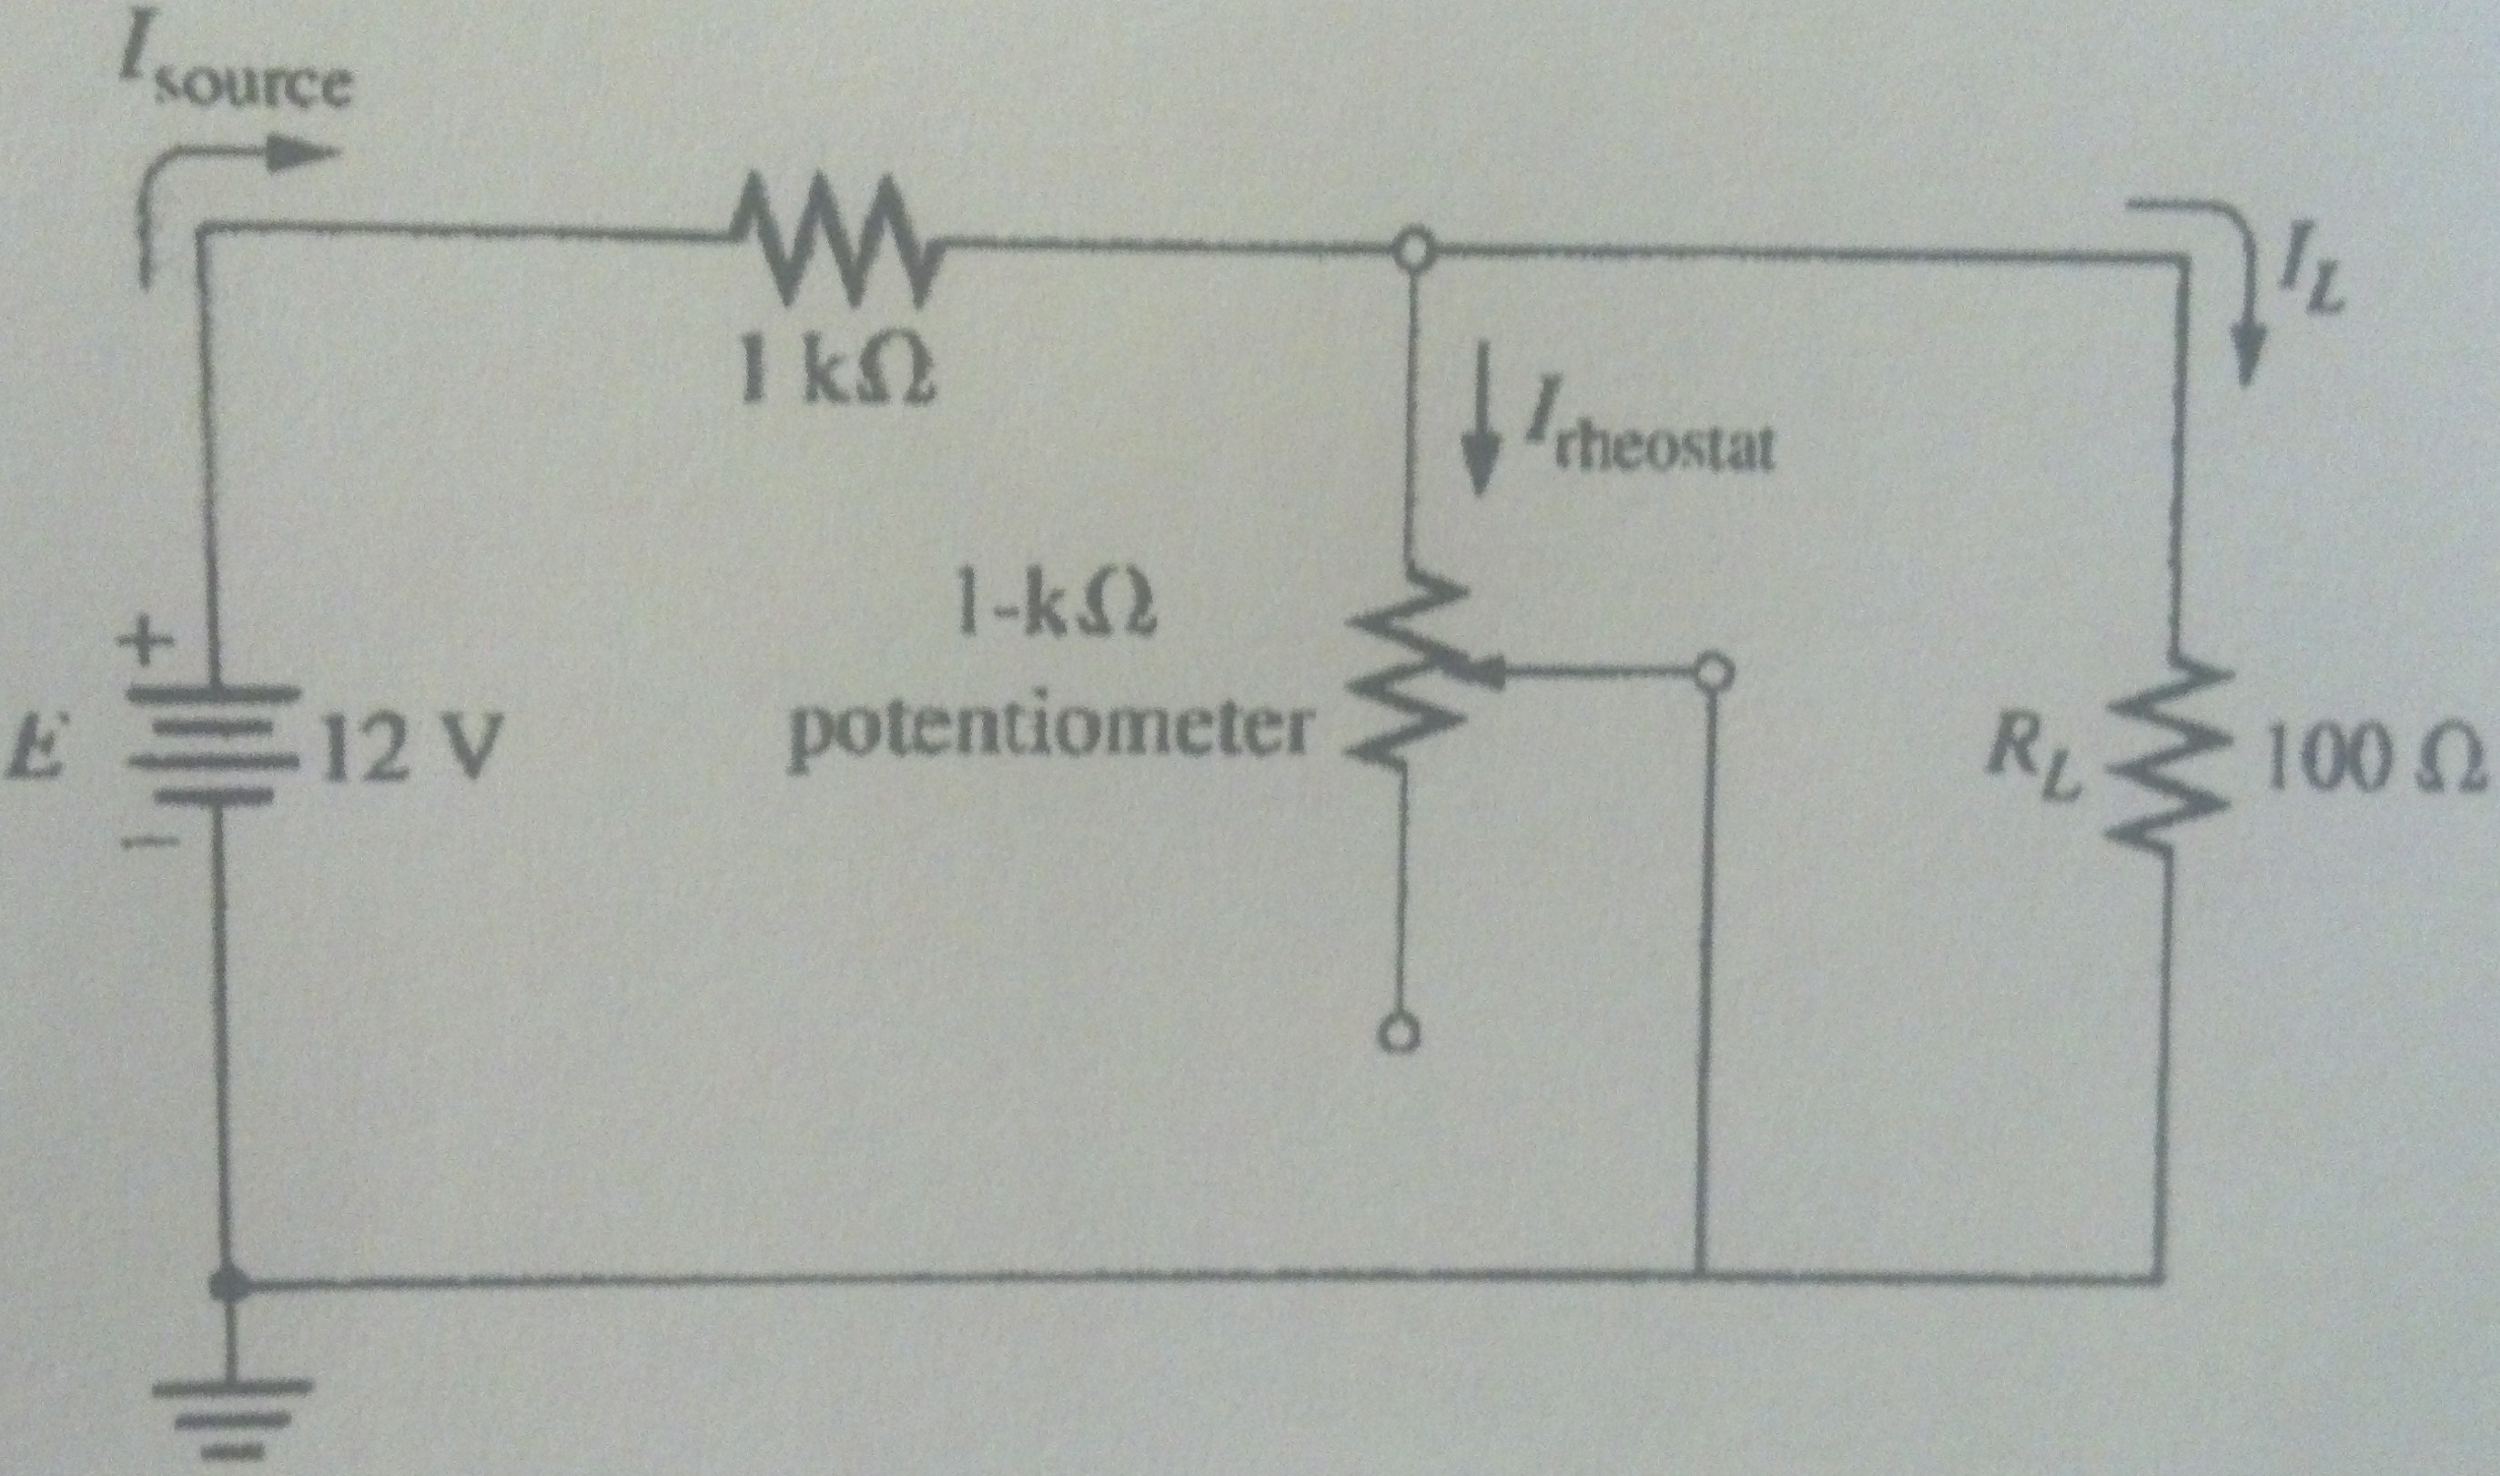 Current control using a potentiometer can also be